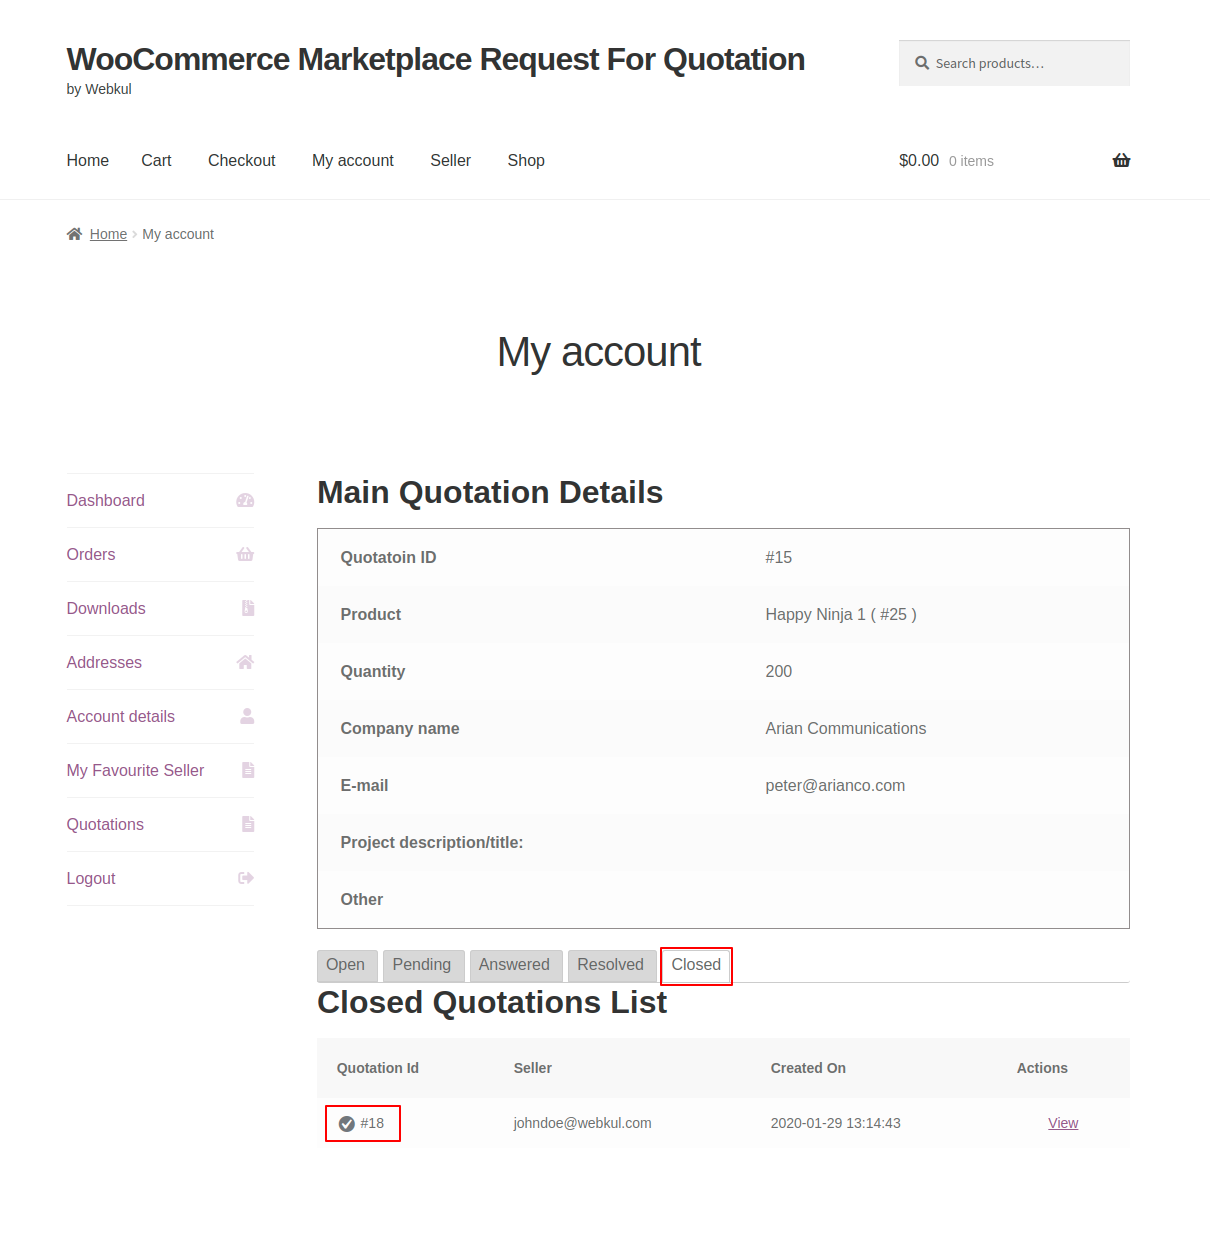 webkul-woocommerce-marketplace-request-for-quotation-customer-end-closed-quotation-list